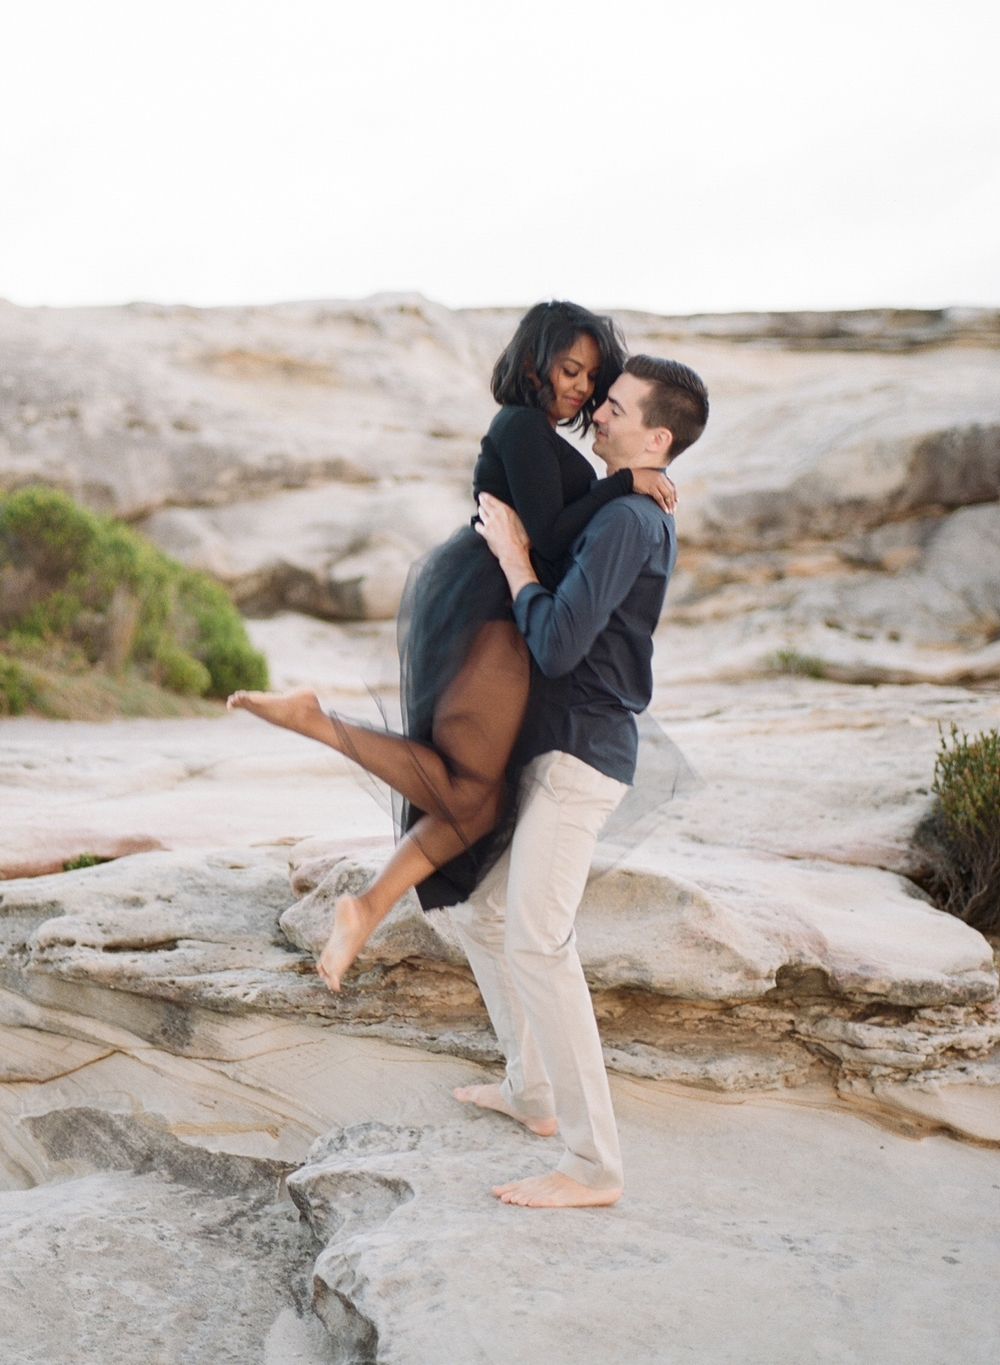 Coastal Sydney couples session by Mr Edwards Photography_0737_1163.jpg